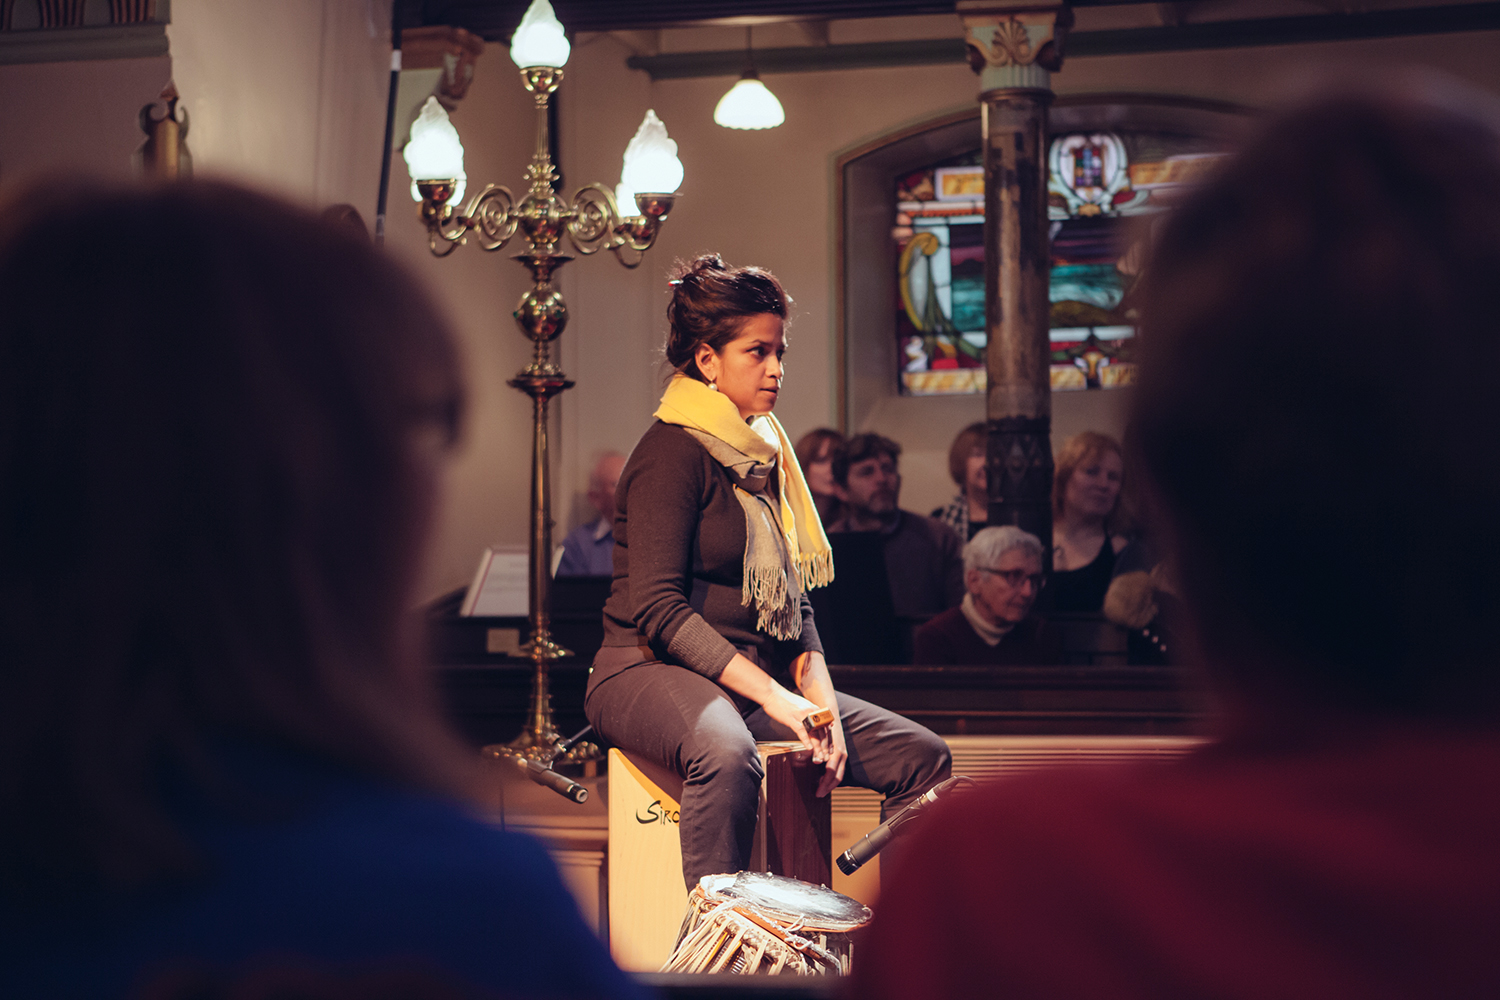 Renu Hossain performing with the Sacred Sounds Women's Choir as part of their showcase event Photo: Ray Chan